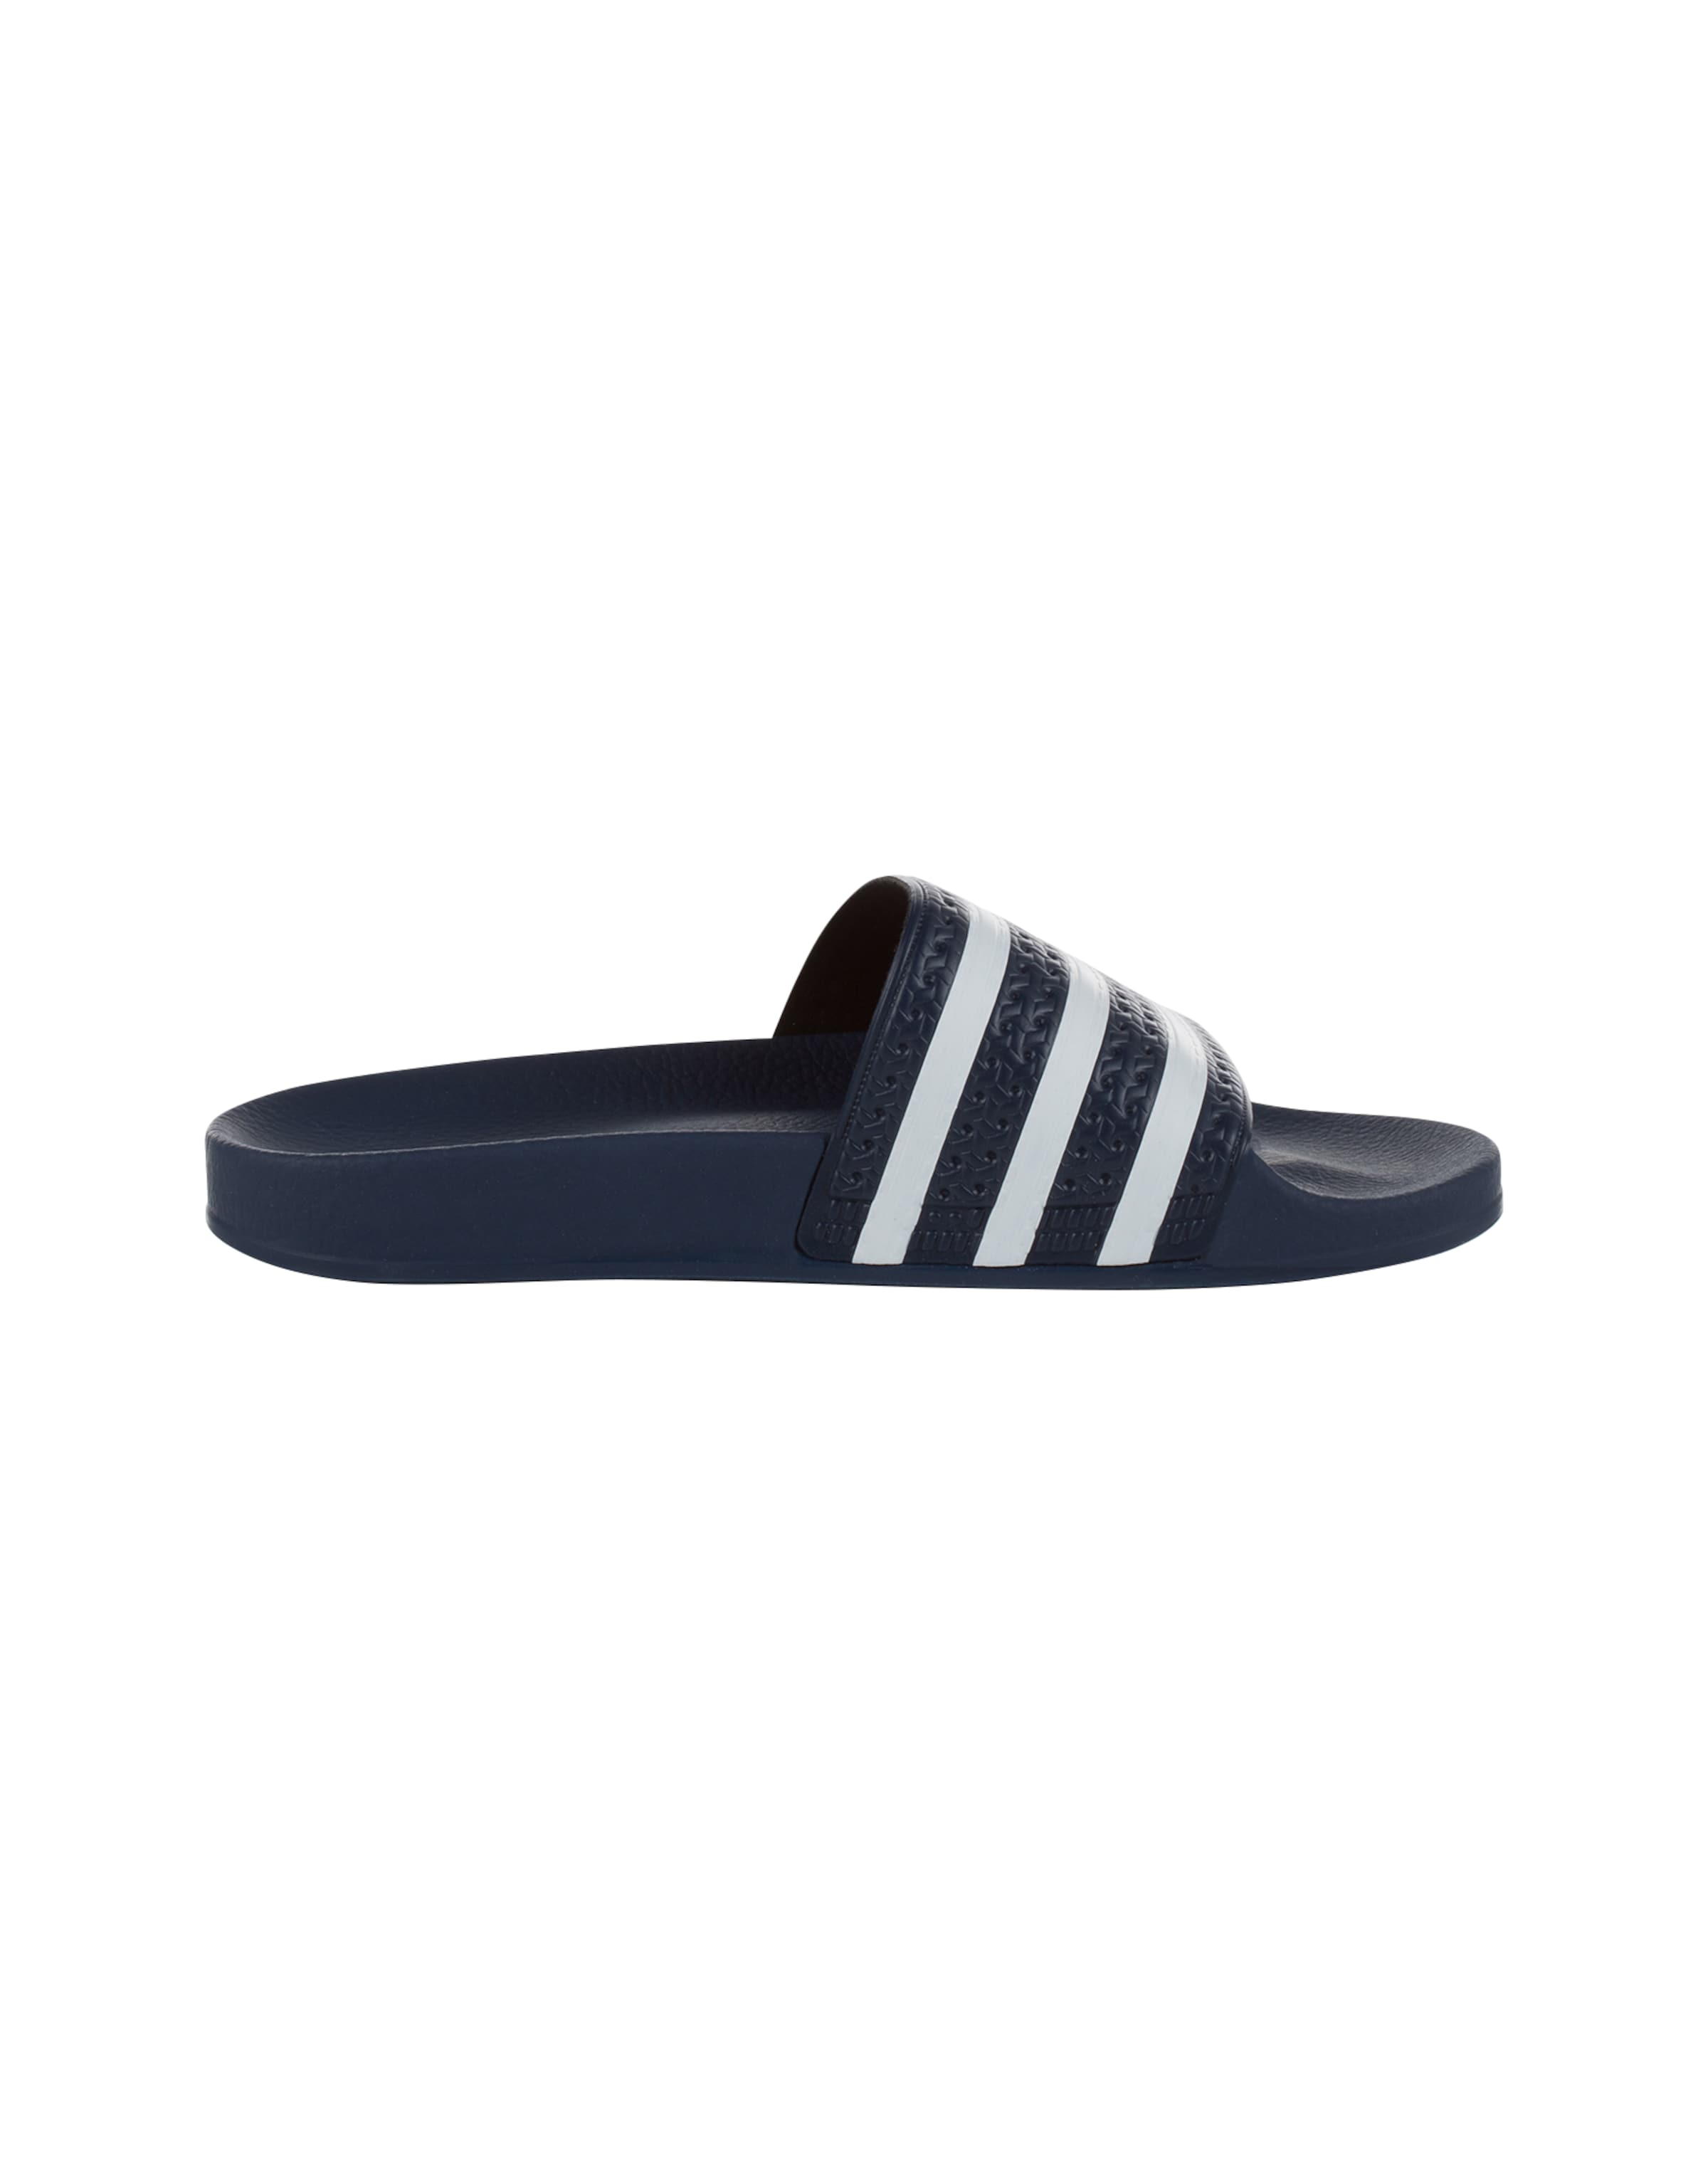 slider 'adilette' In Bade Adidas Originals BlauWeiß cq4RjL35A